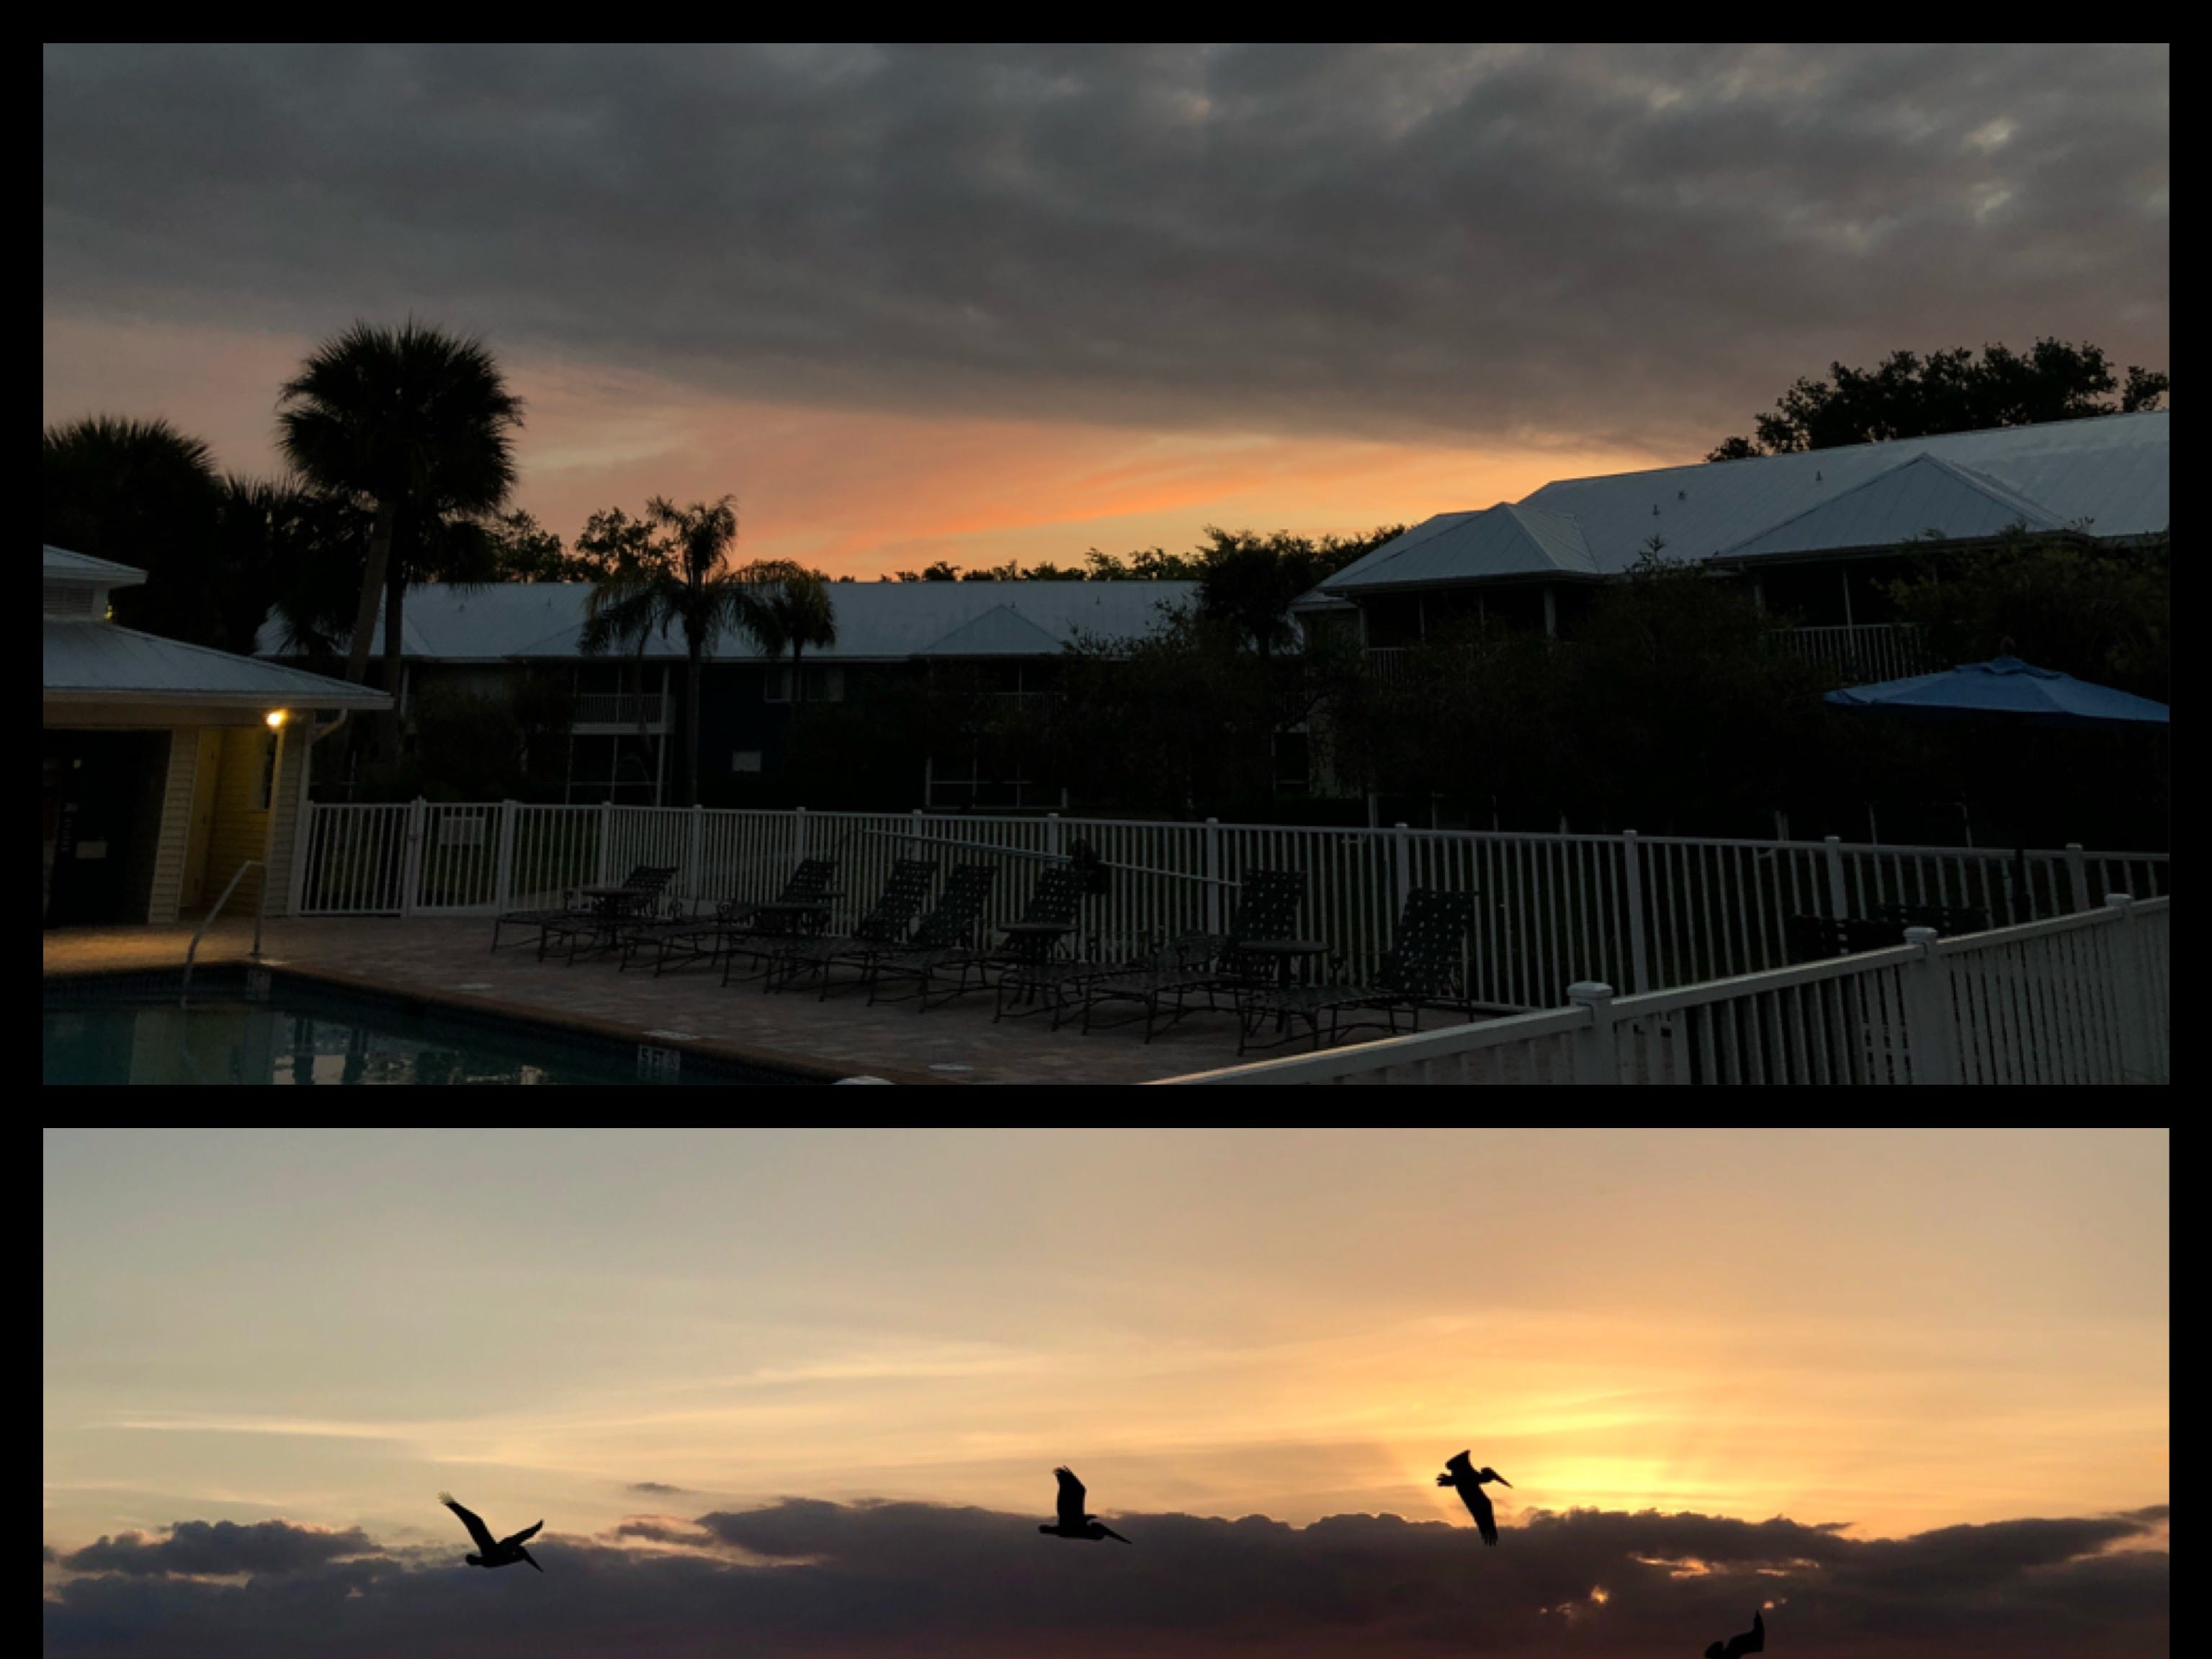 This is love project, capturing moments around the sunrise and sunset, is my attempt to pause and be present in my life and to share the sentiment of my surroundings: often abundant beauty Southwest Florida offers.I would like to invite you to share your pictures and stories. If you found an image from the attic, please share with us what memory it brought. Please send us your pictures and contact information to LoveProject@gannett.com. Attn: visuals. Selected pictures will be posted on our platforms periodically.